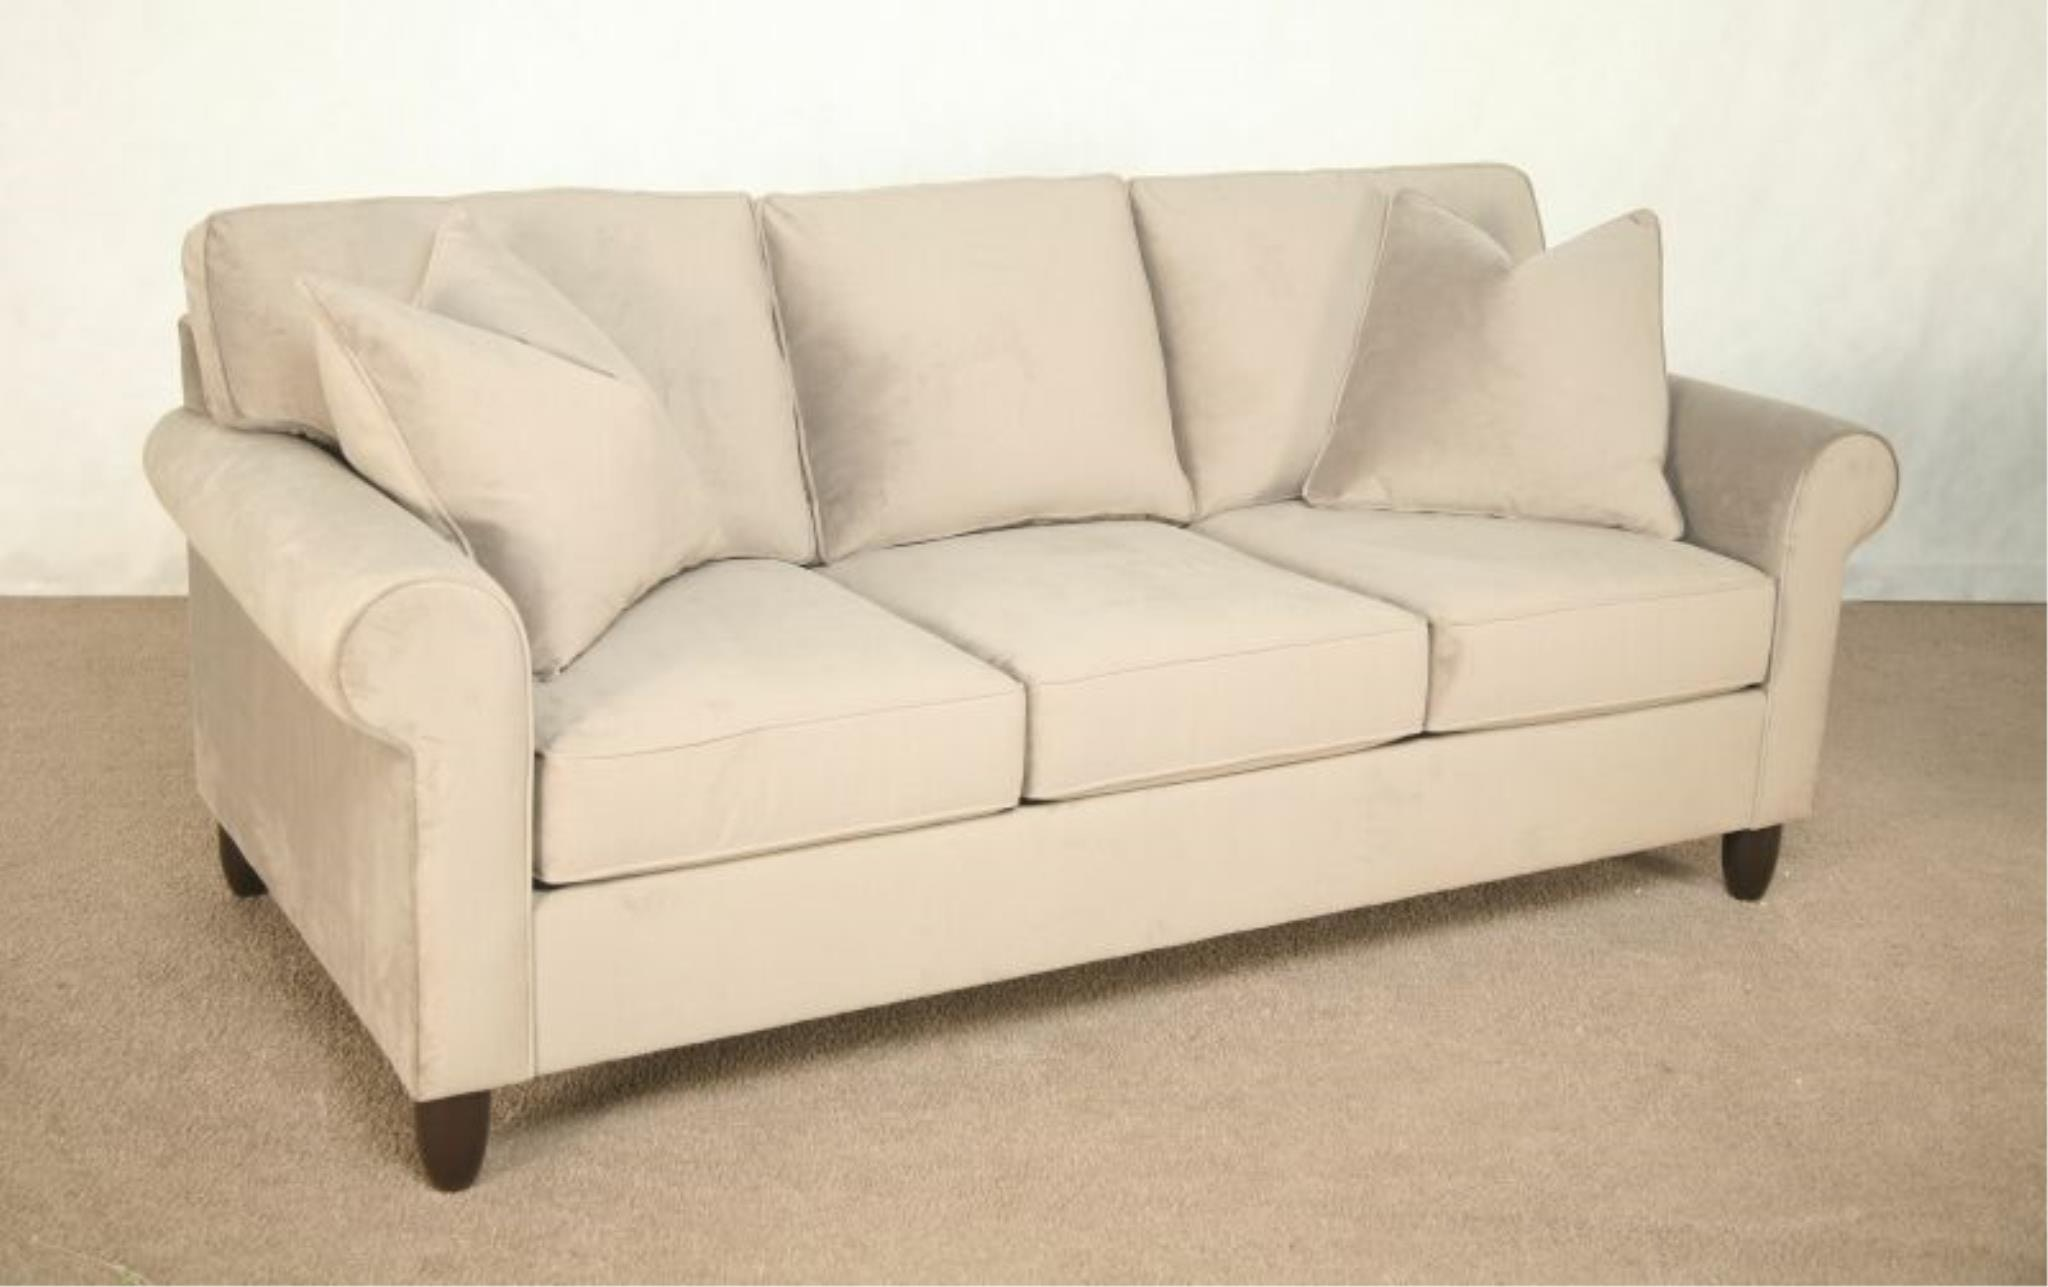 Bauhaus Living Room Rolled arm sectional available in endless